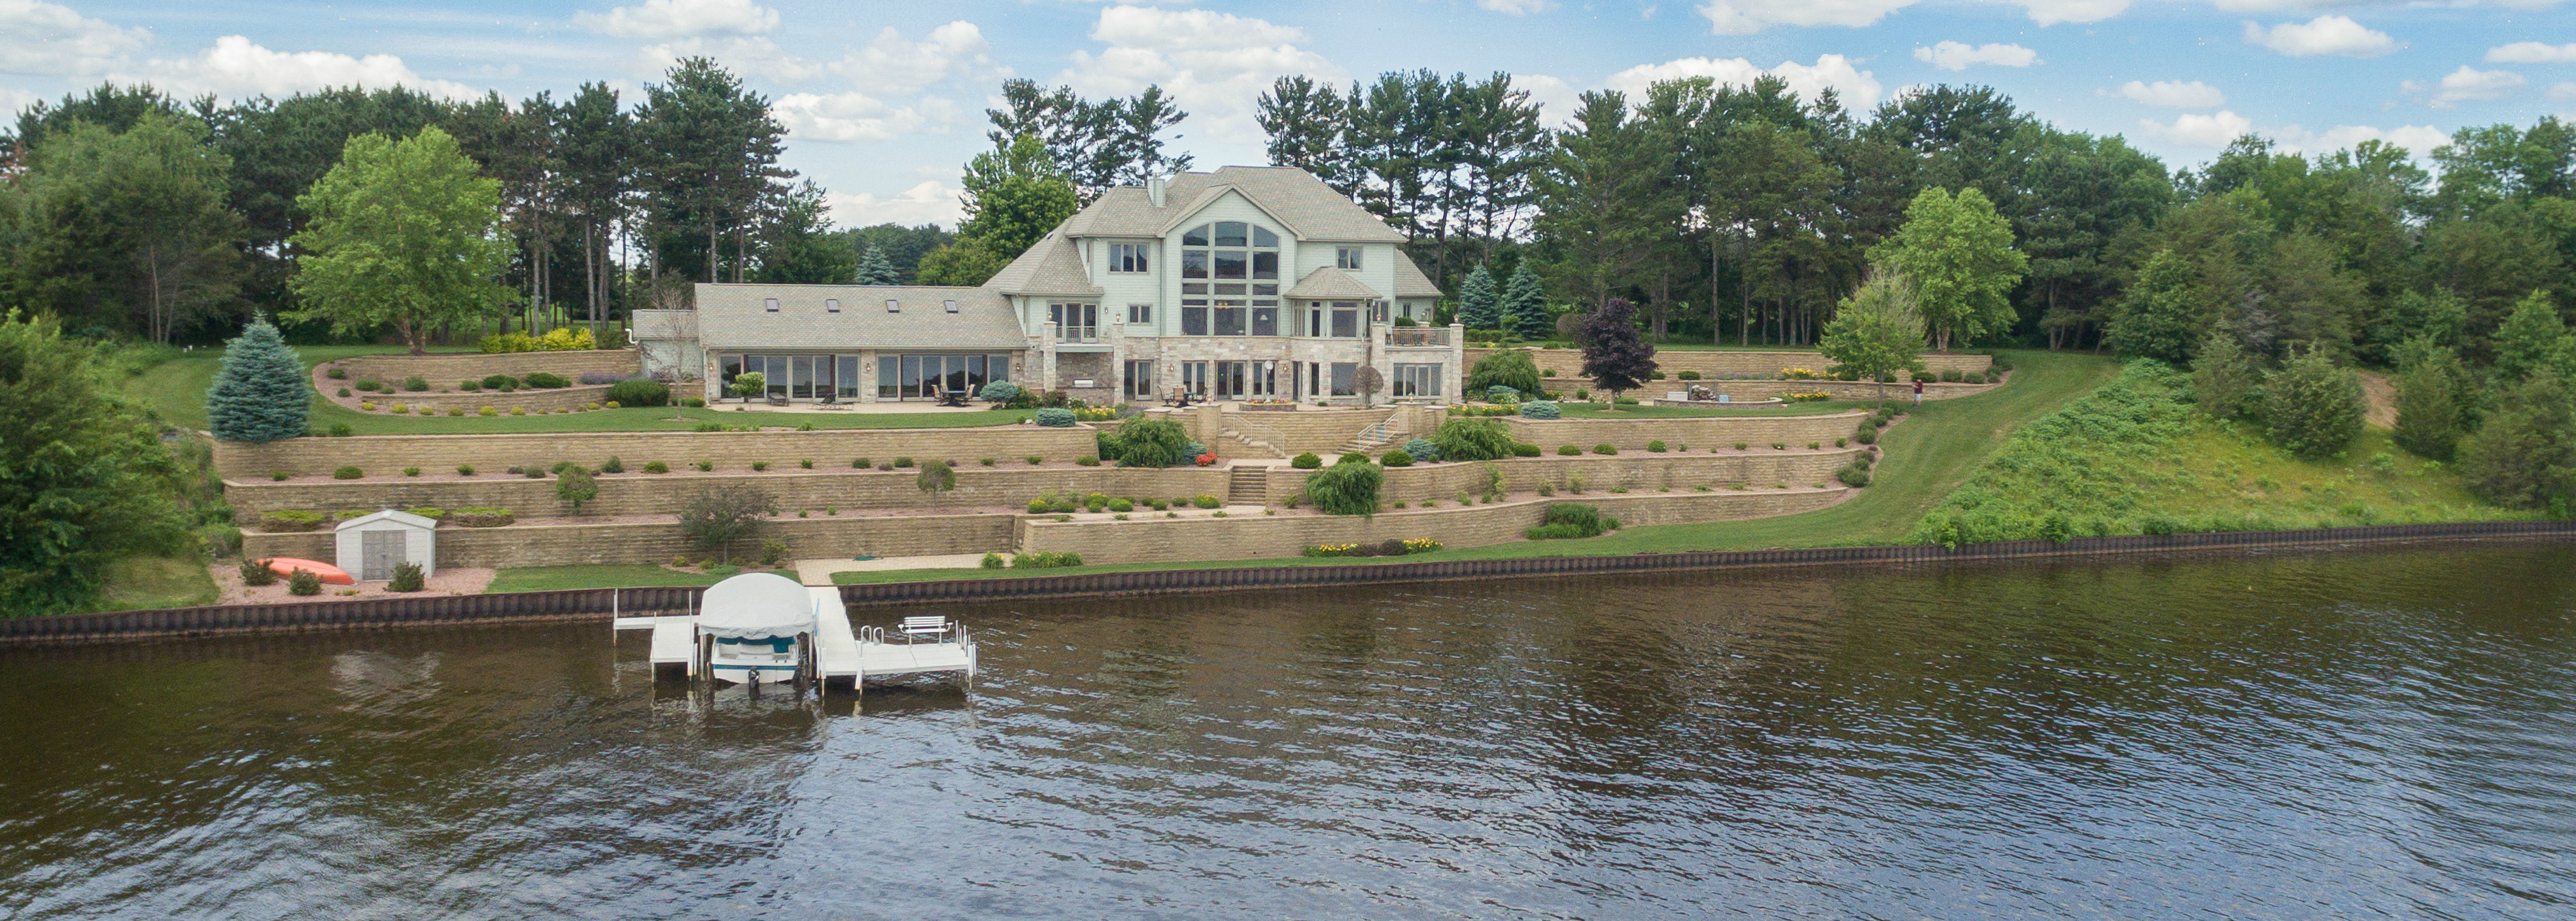 Lake Homes For Sale Jefferson County Wi